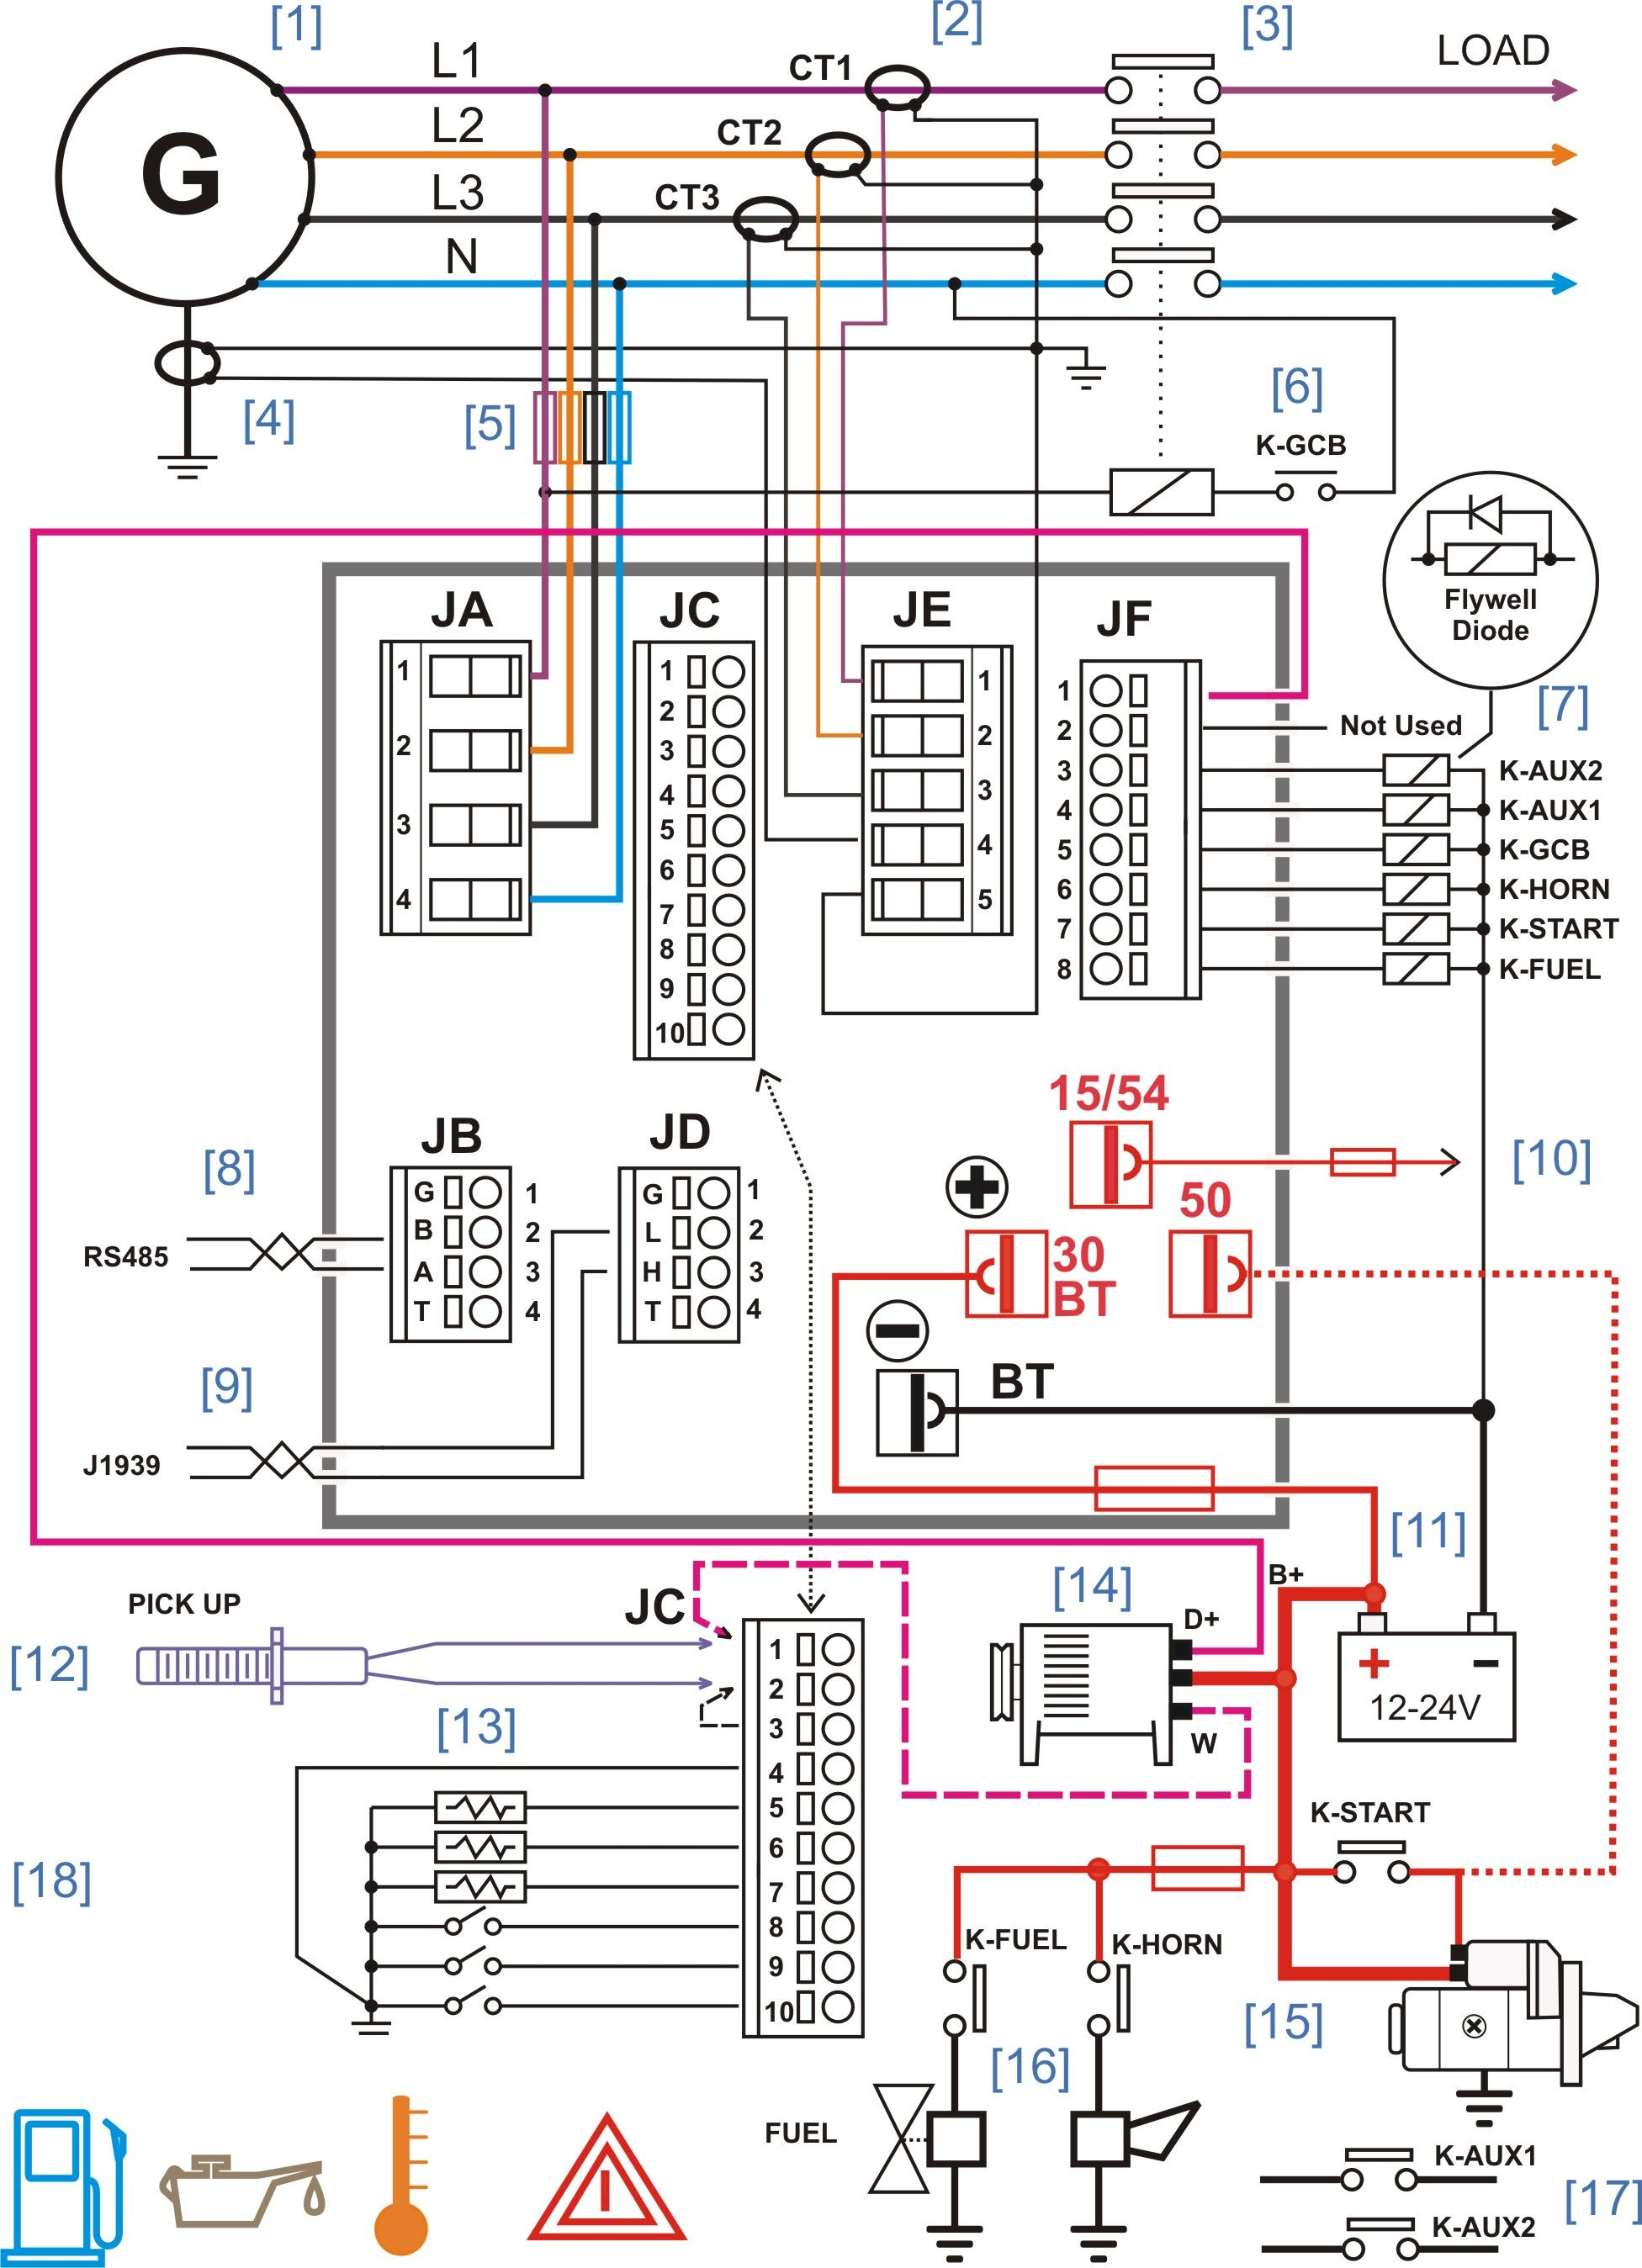 Diesel Generator Control Panel Wiring Diagram | Diesel generators in 2019 | Electrical wiring